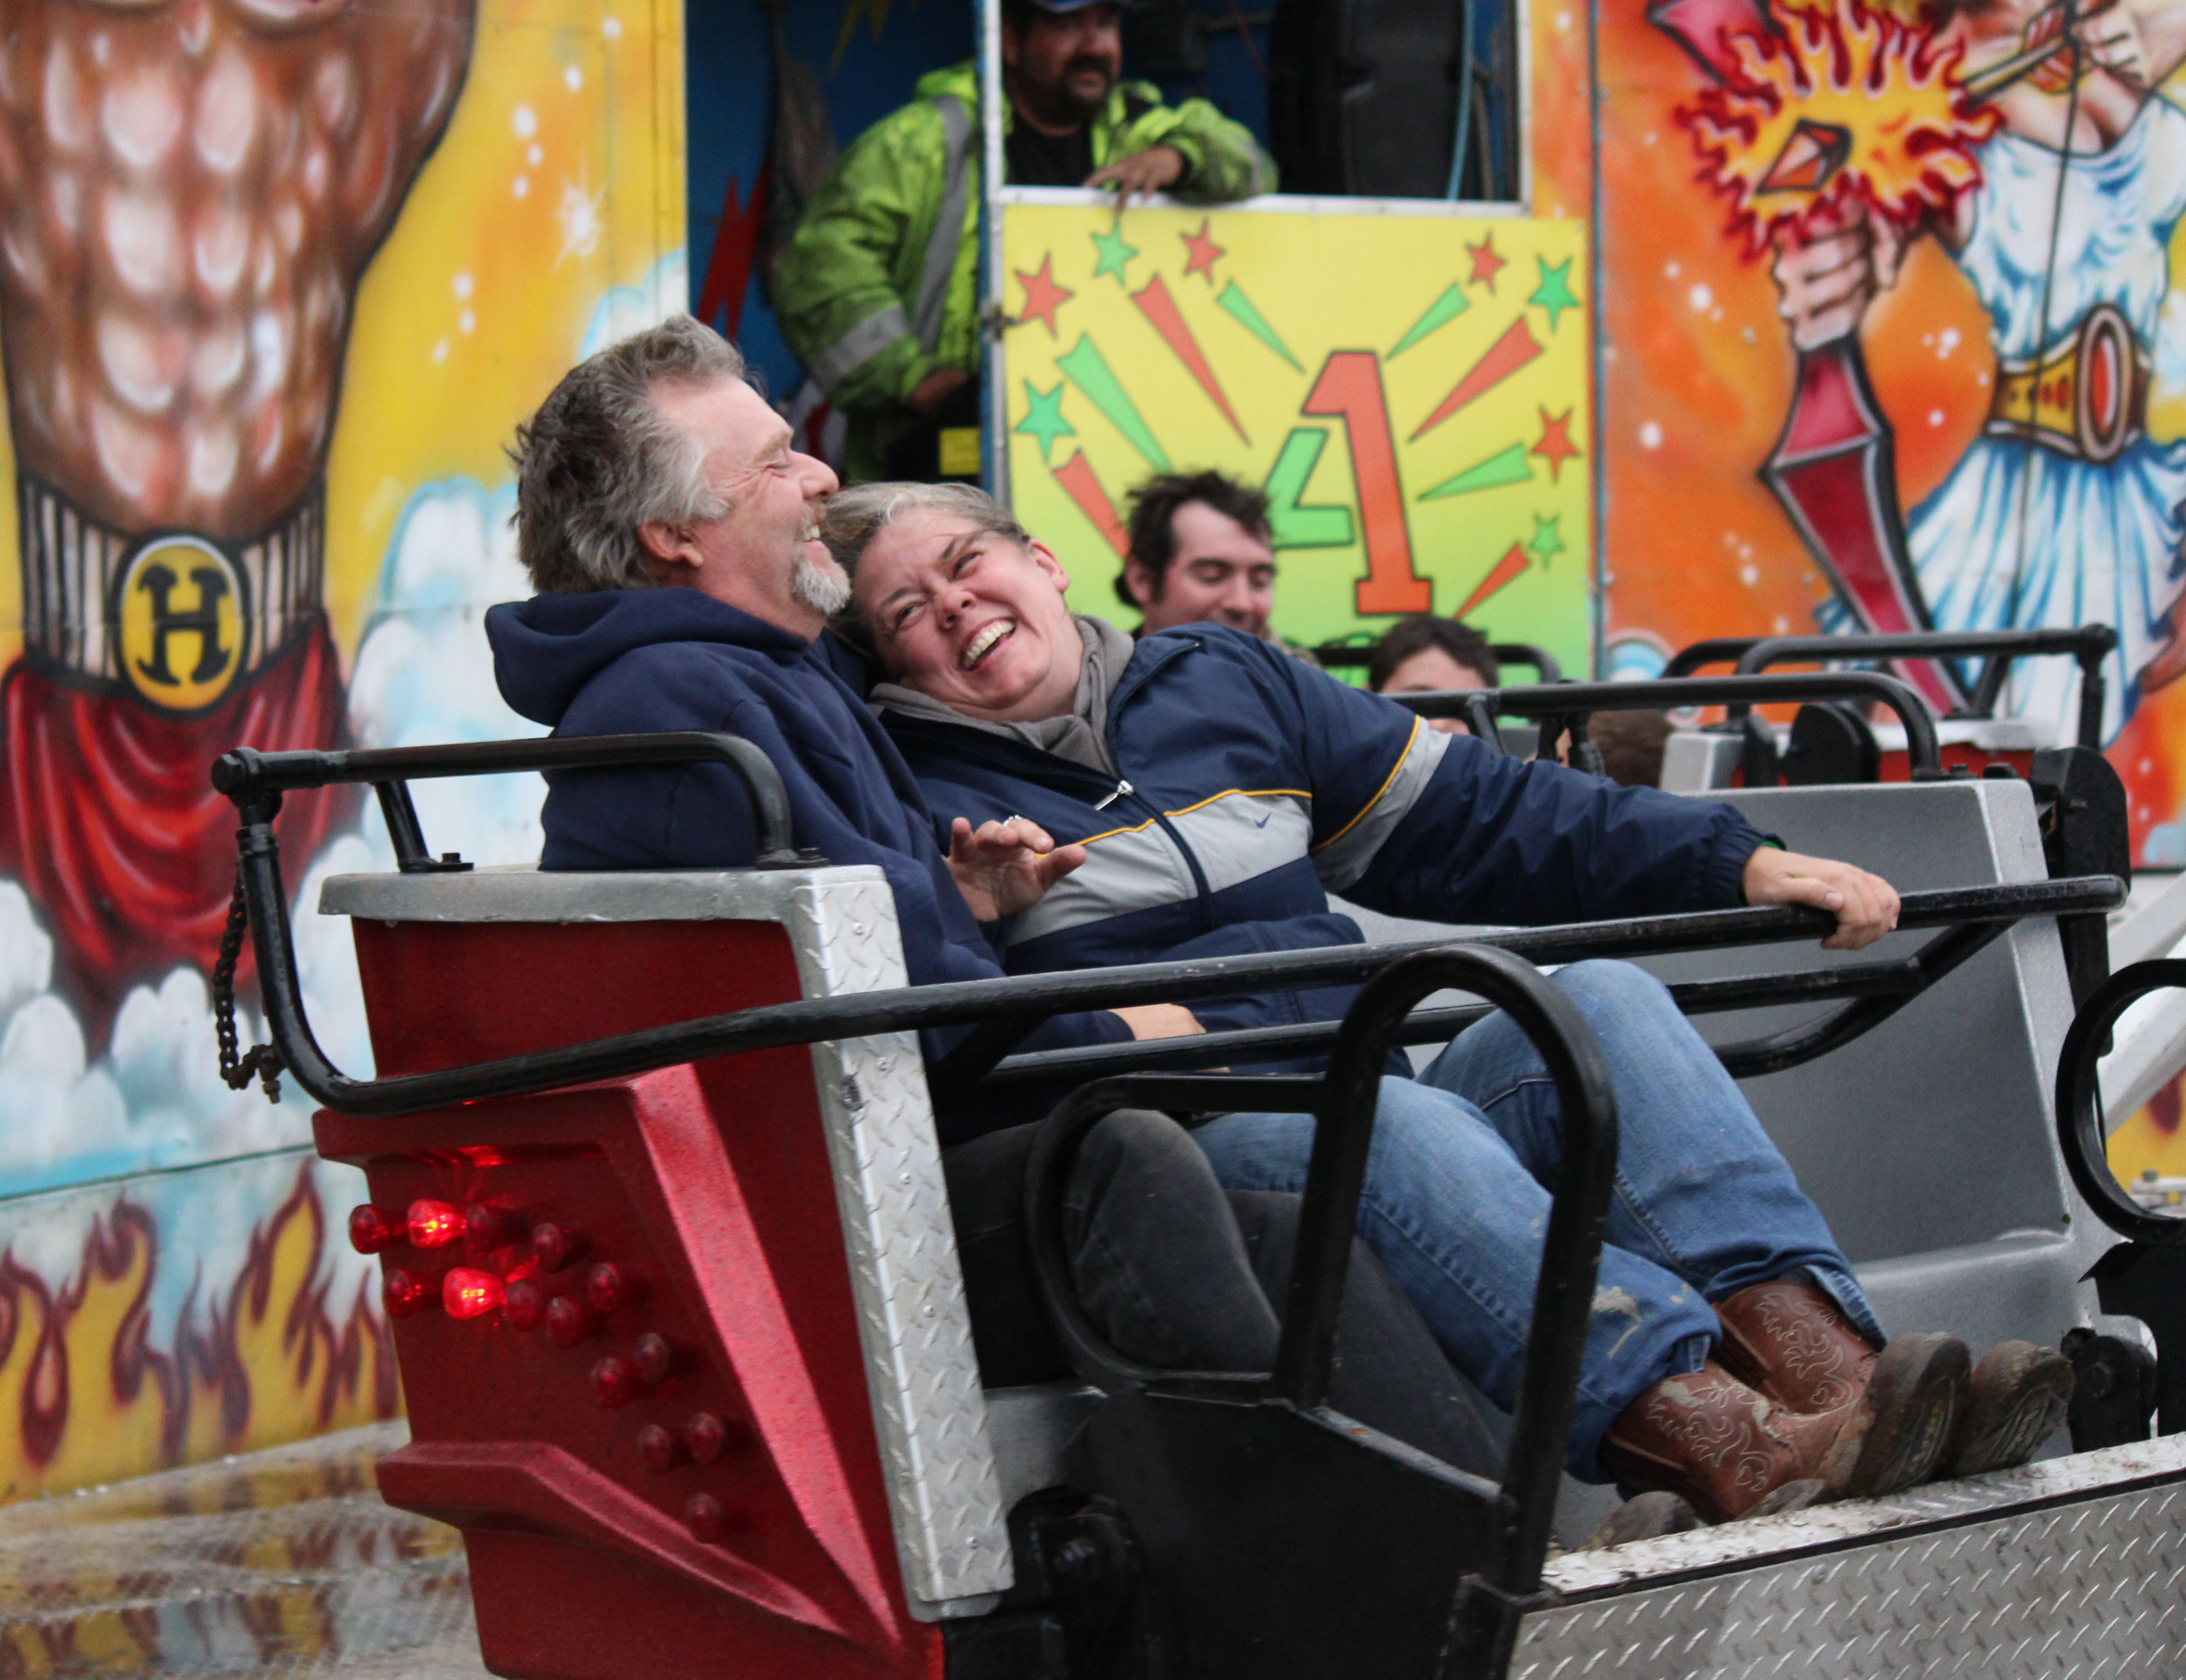 Ray Rodeheauer and Suzanne Lagasse of Soldotna get some laughs riding the Sizzler at the Kenai Peninsula Fair carnival on Saturday night.-Photo by McKibben Jackinsky, Homer News